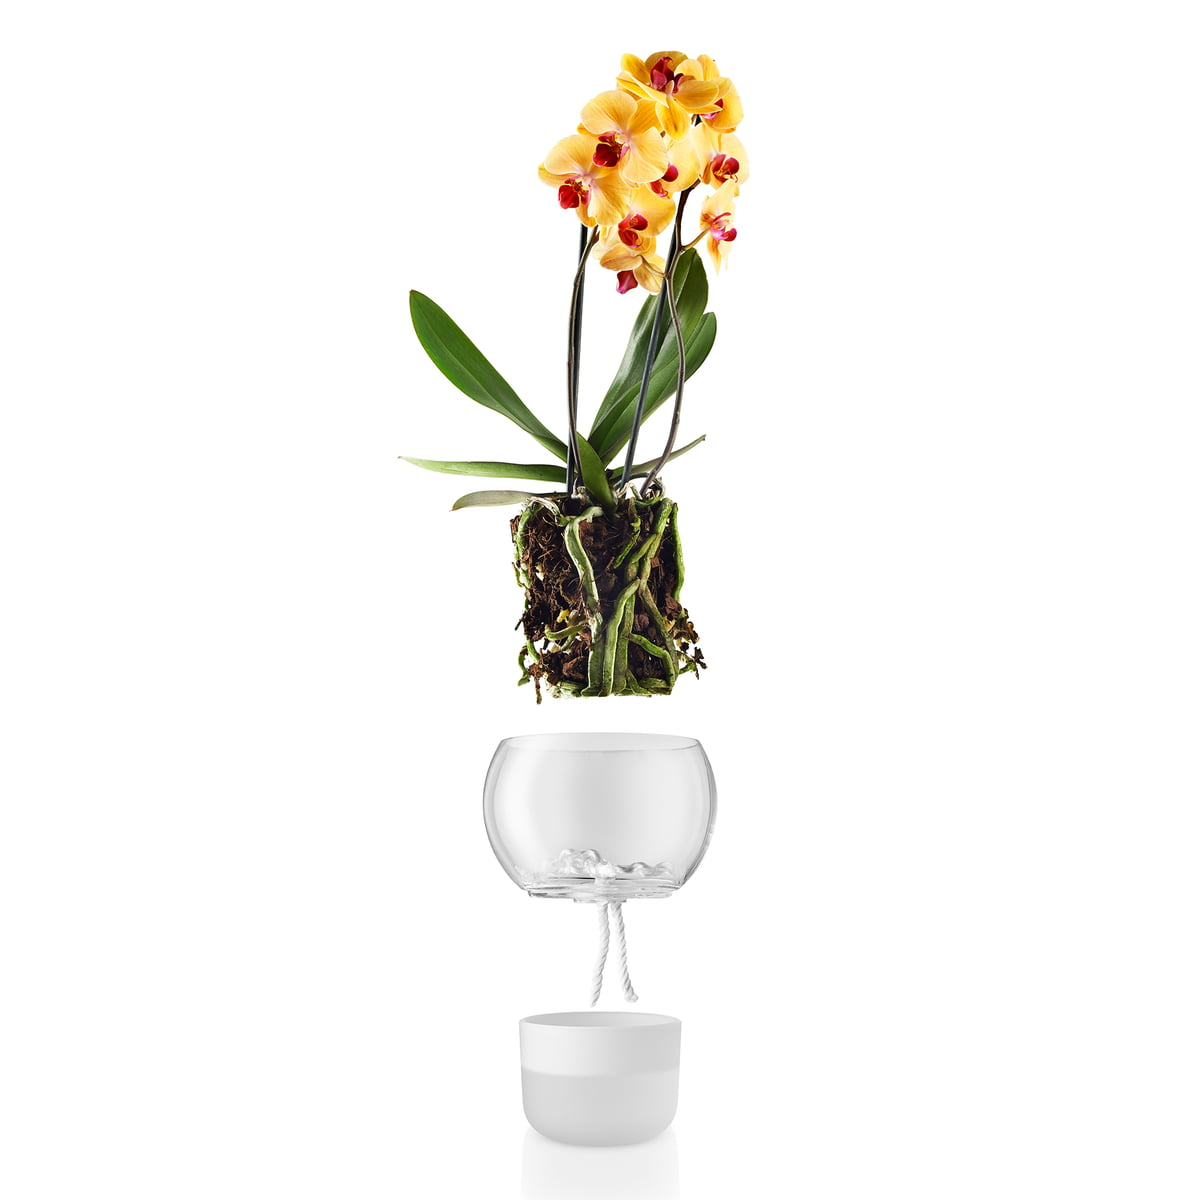 225 & Eva Solo - Self-Watering Pot for Orchids Ø 13 cm